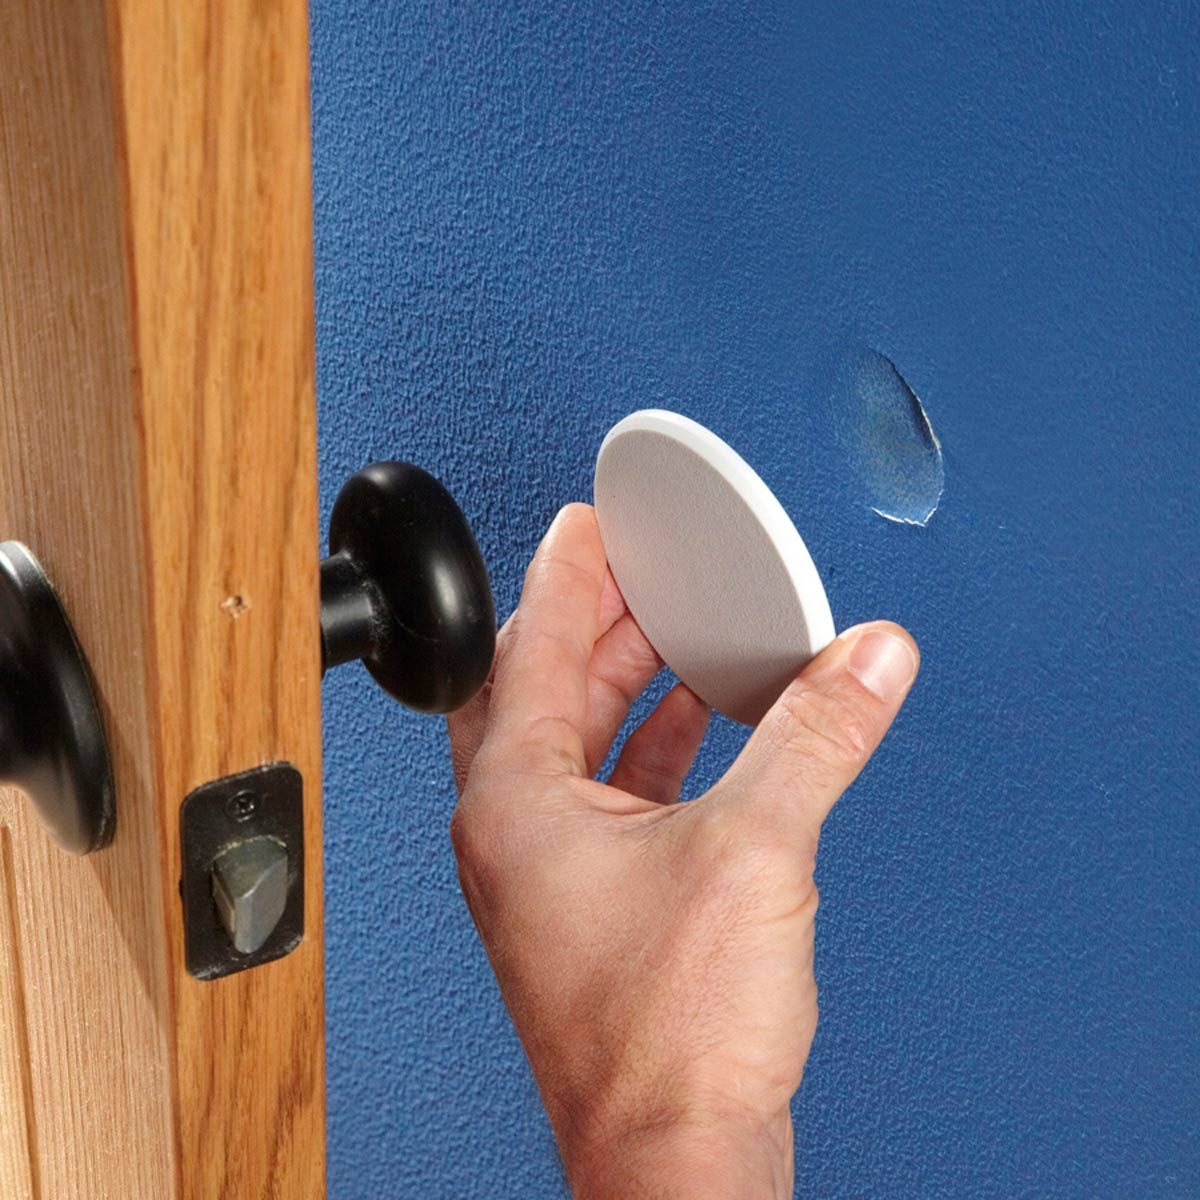 The 14 Best Fixes For Annoying Sights in Your Home